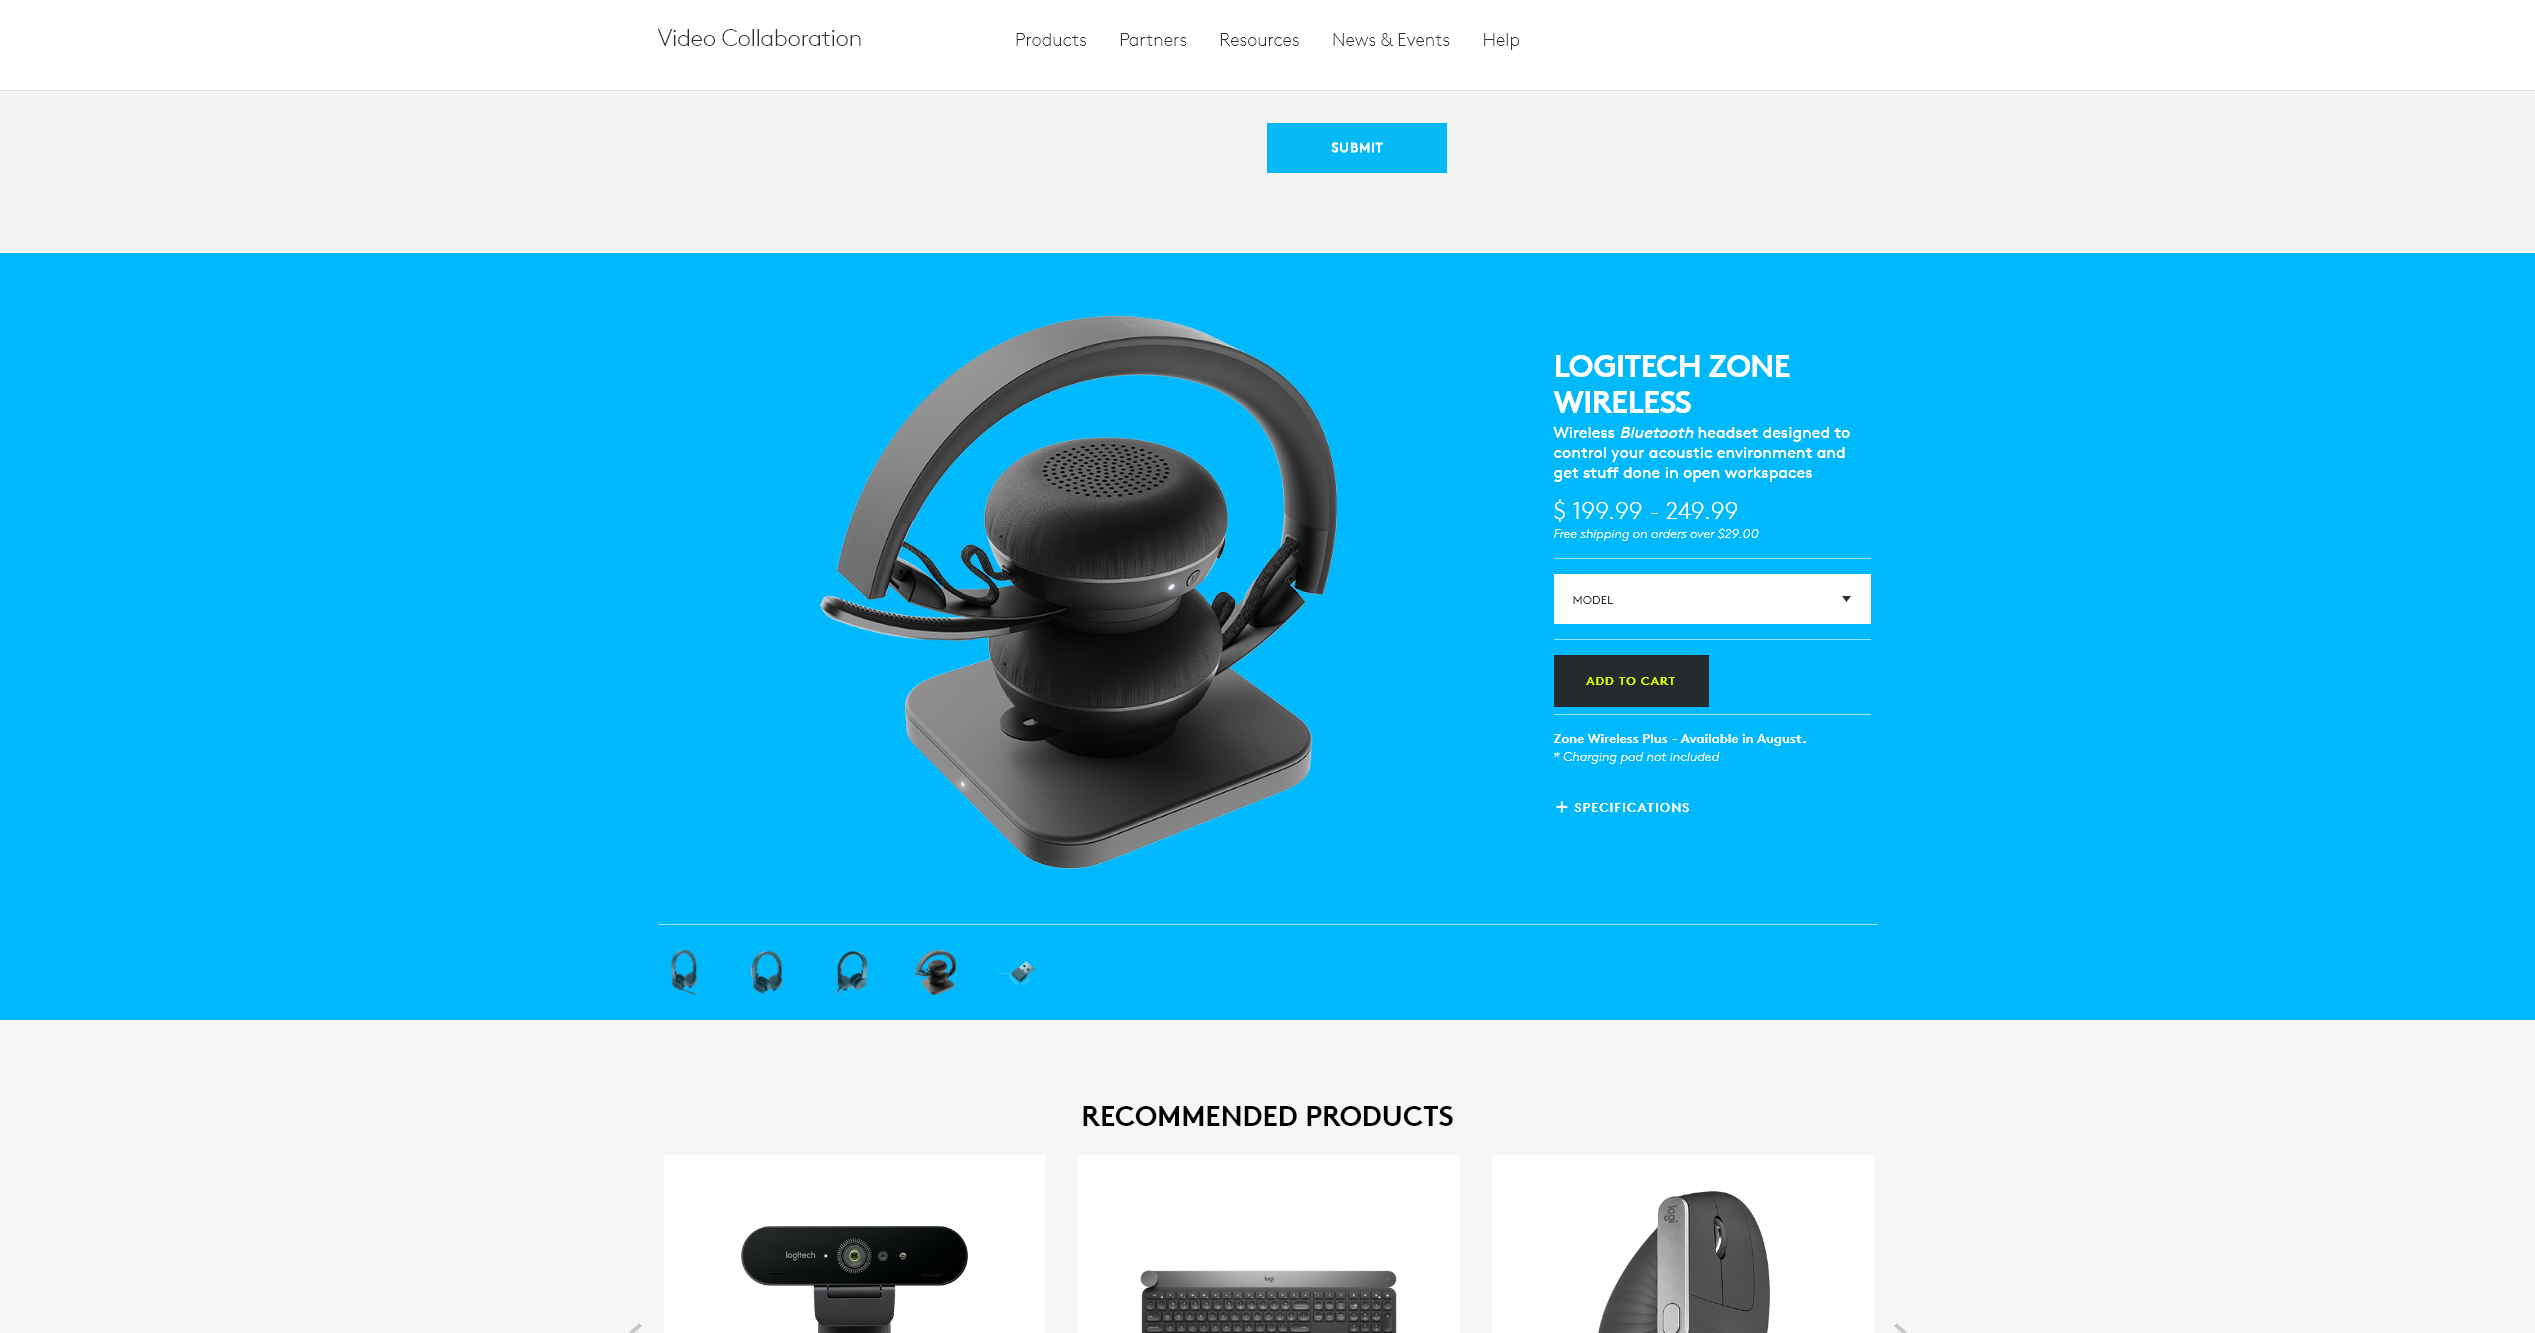 Logitech Zone Wireless Esben Oxholm Freelance Cg Artist Product Images And Animations